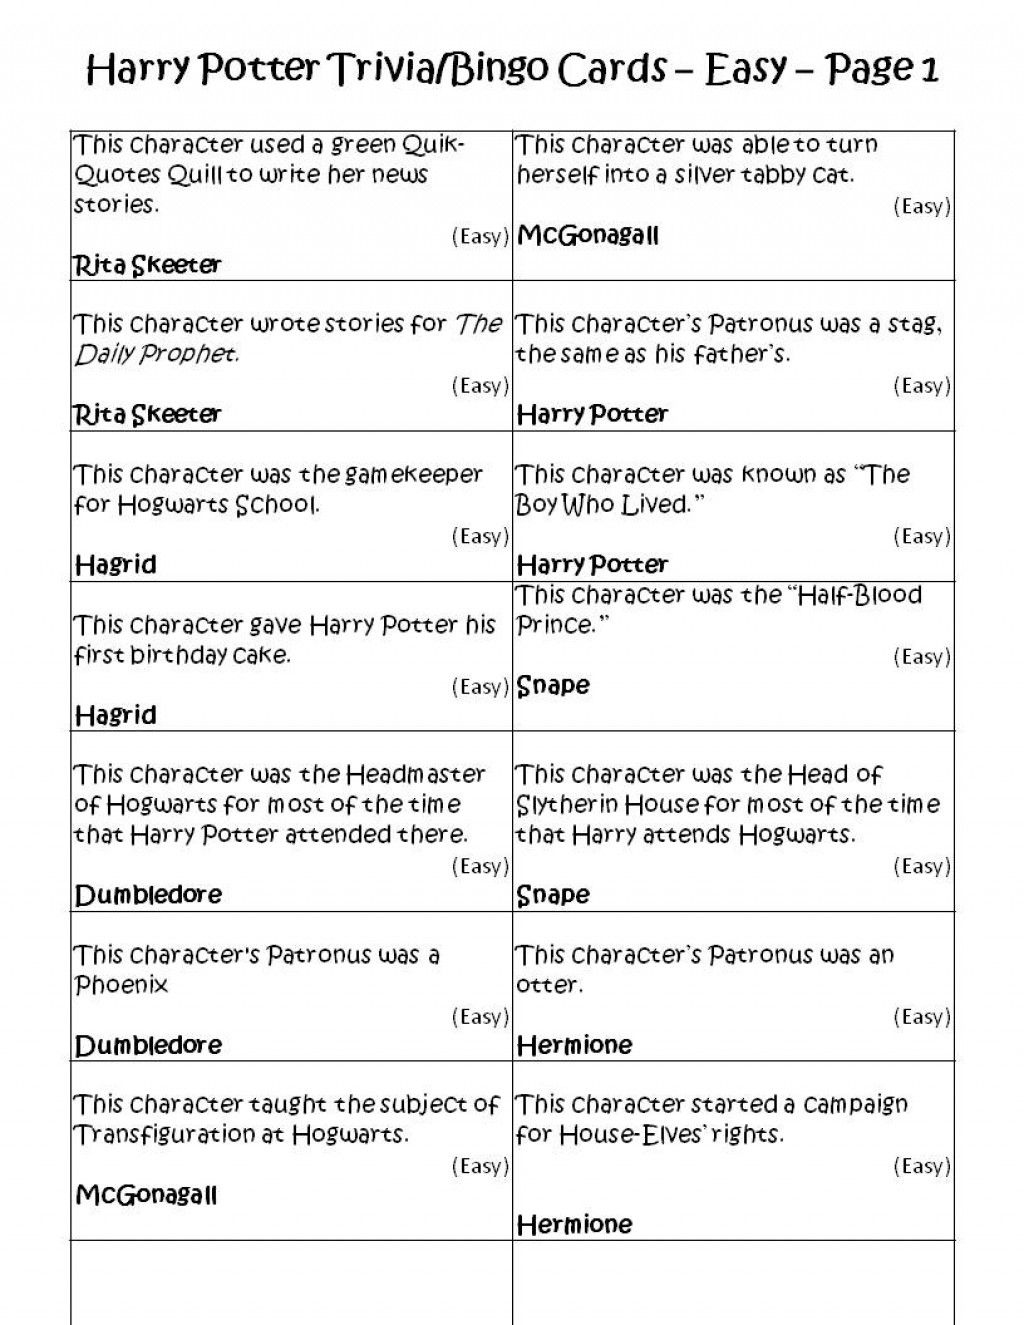 Harry Potter Movie Trivia Questions And Answers Printable